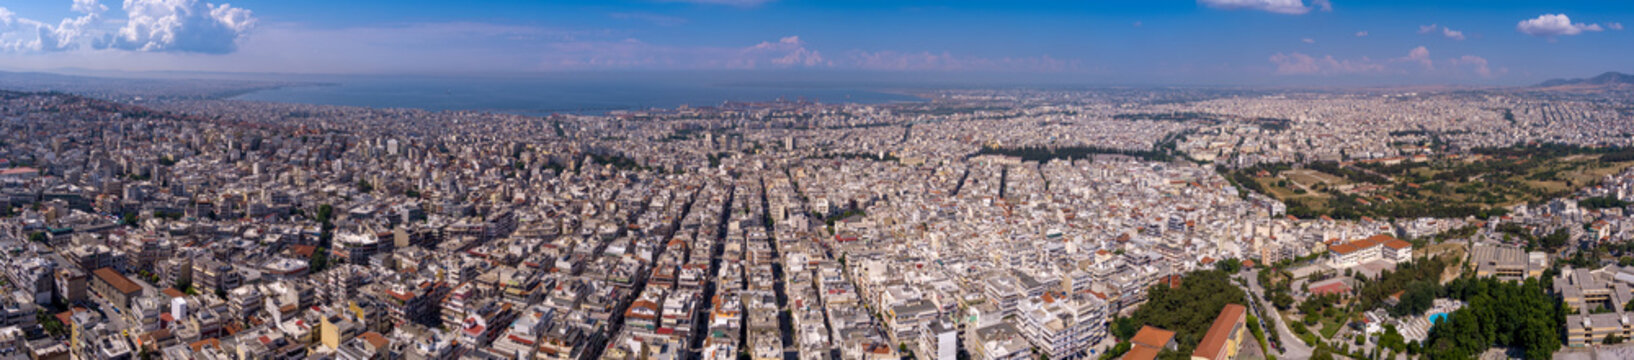 Aerial view of the city of Thessaloniki from the area Neapoli.